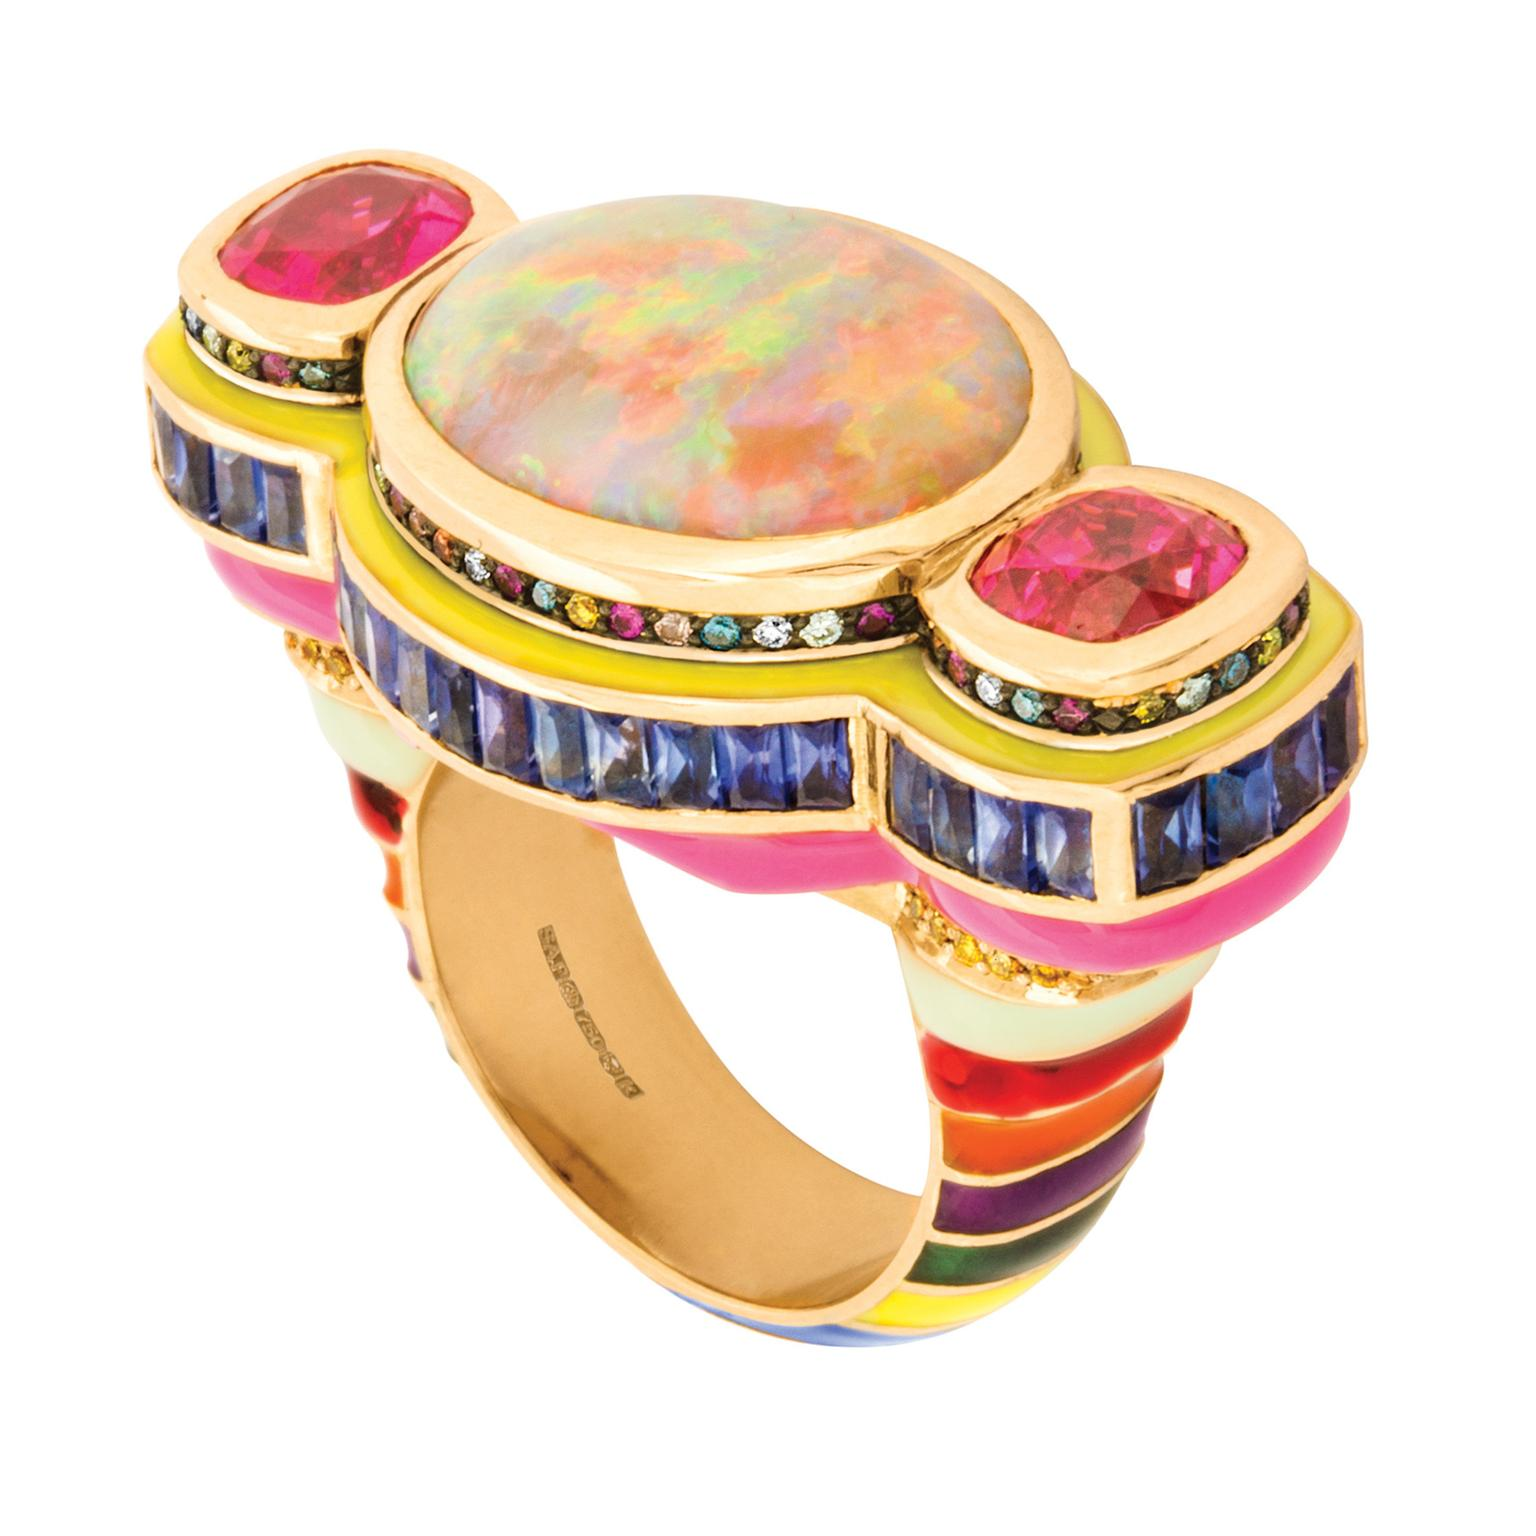 Solange Azagury-Partridge Poptails Temple opal and spinel cocktail ring